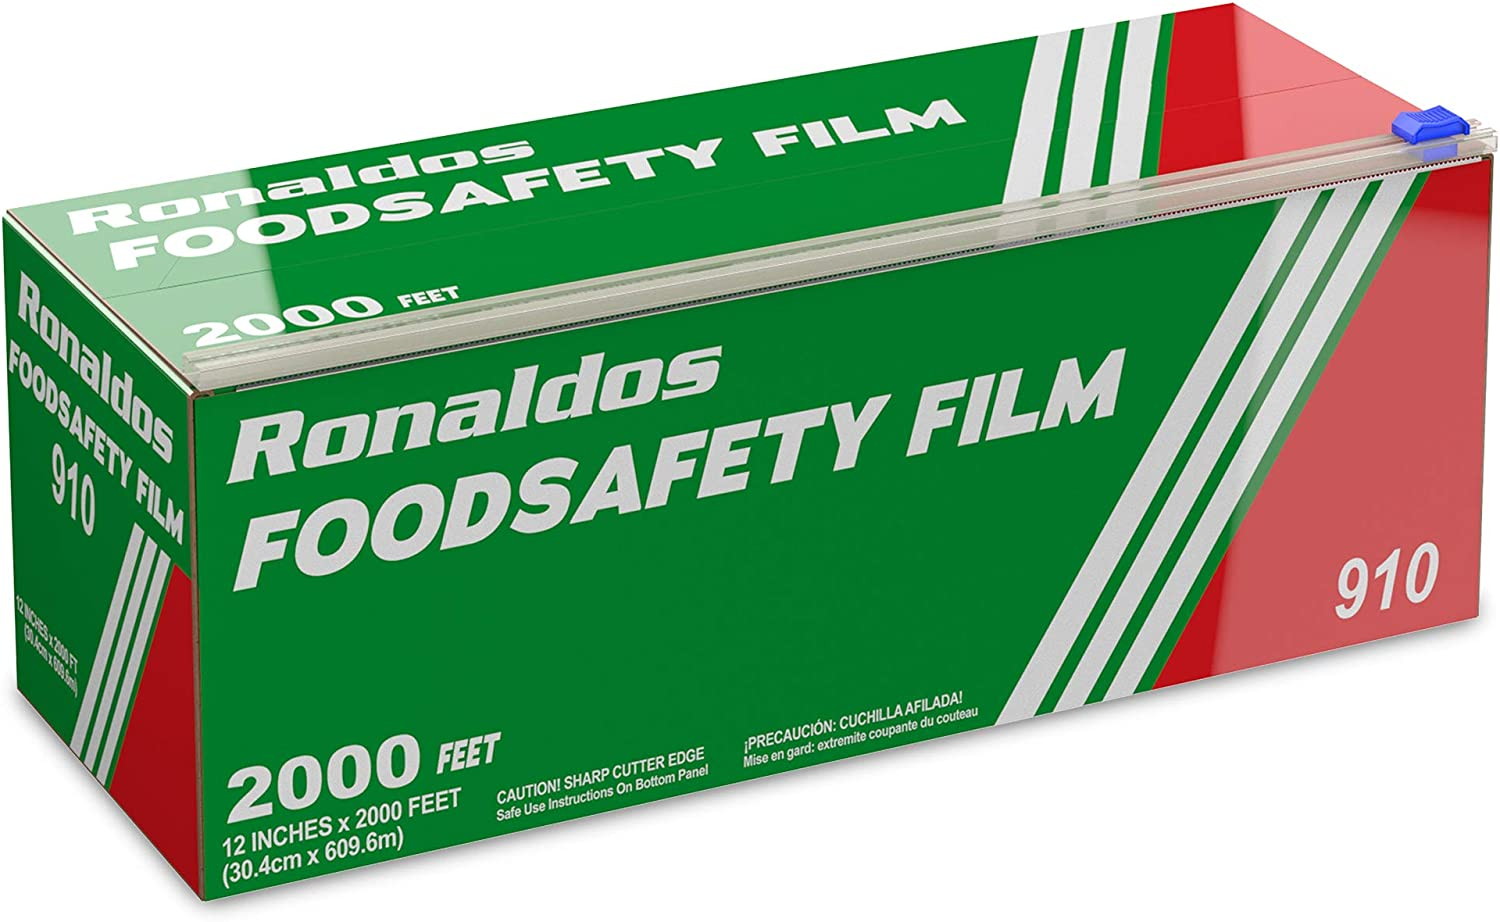 Ronaldos Import Food Tulsa Mall Safety Film 18 inch Wrap 2000ft Plastic x Commer